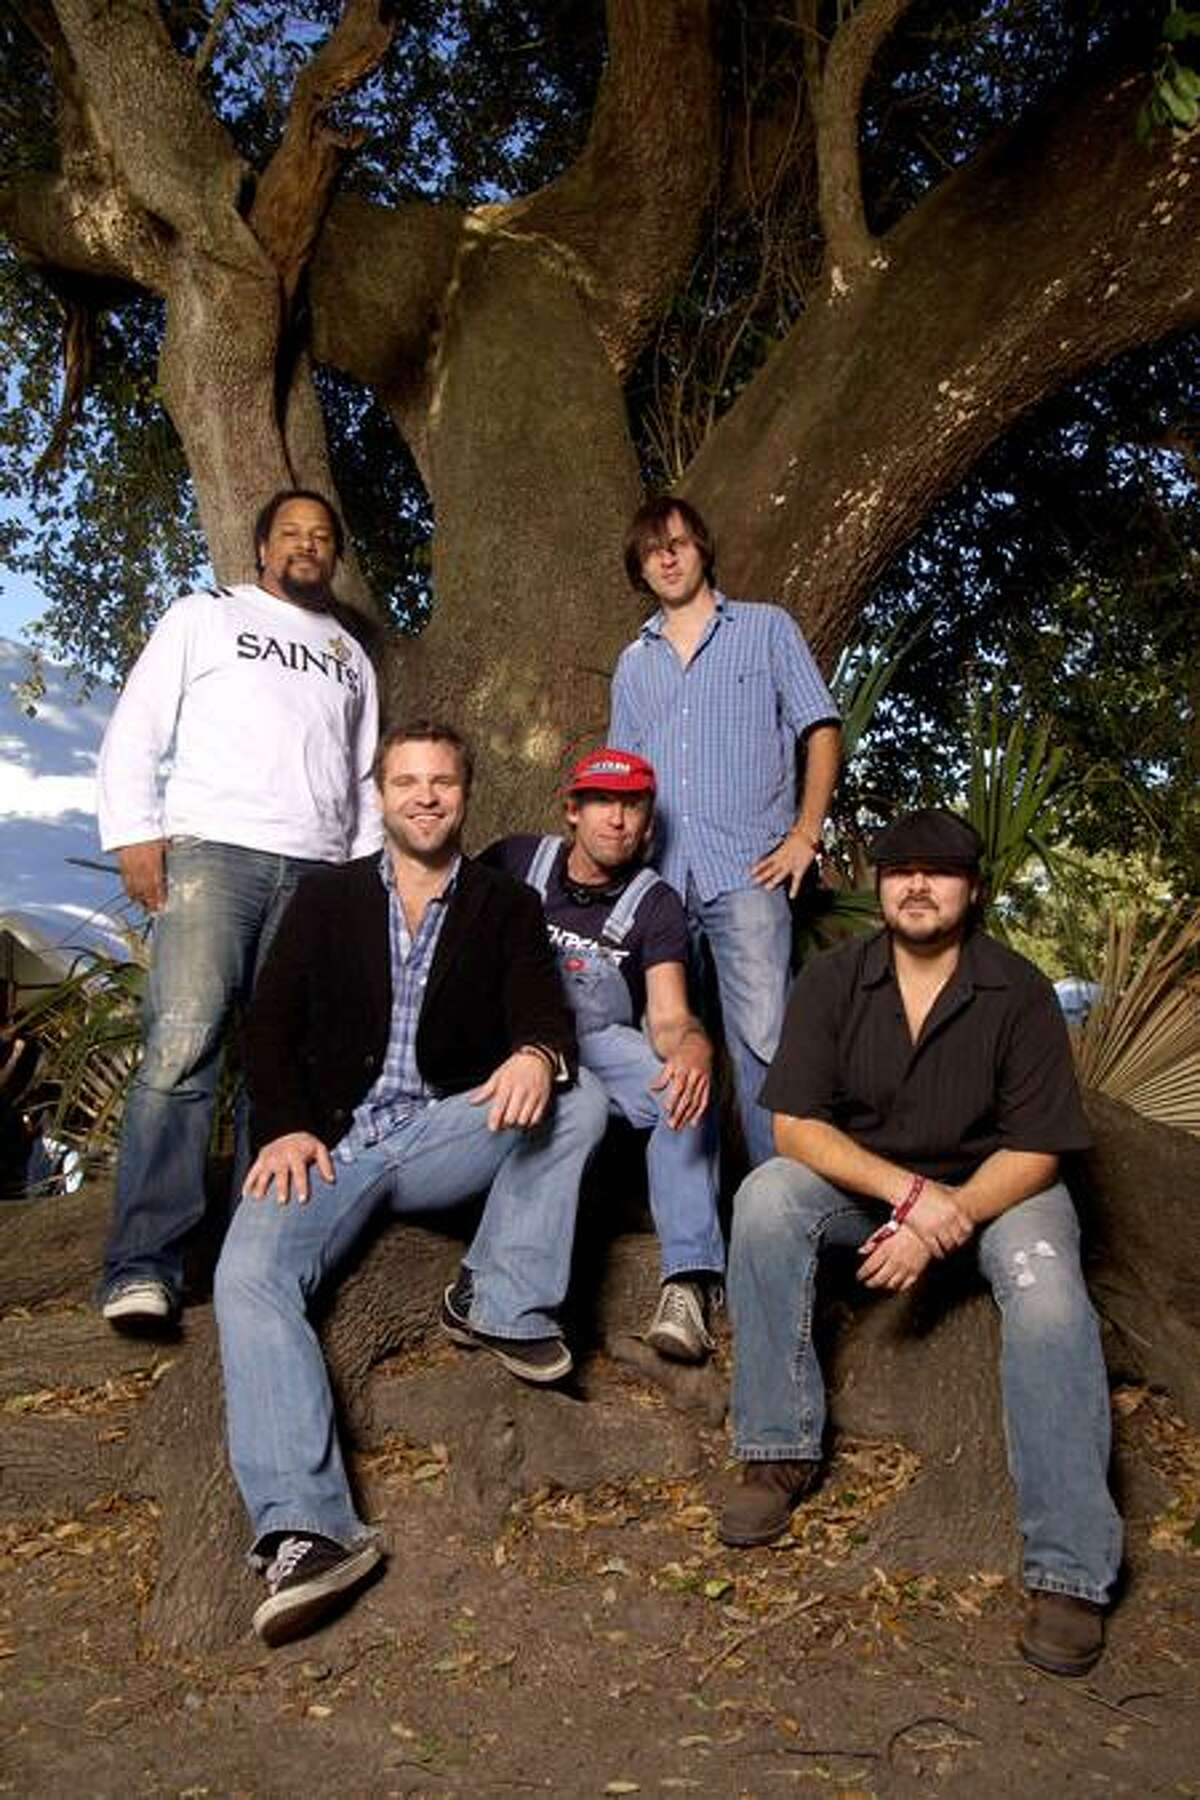 Zack Smith Photography: Honey Island Swamp Band is made up of a heady mix of various American and exotic influences -- frequently sung in four-part harmony.